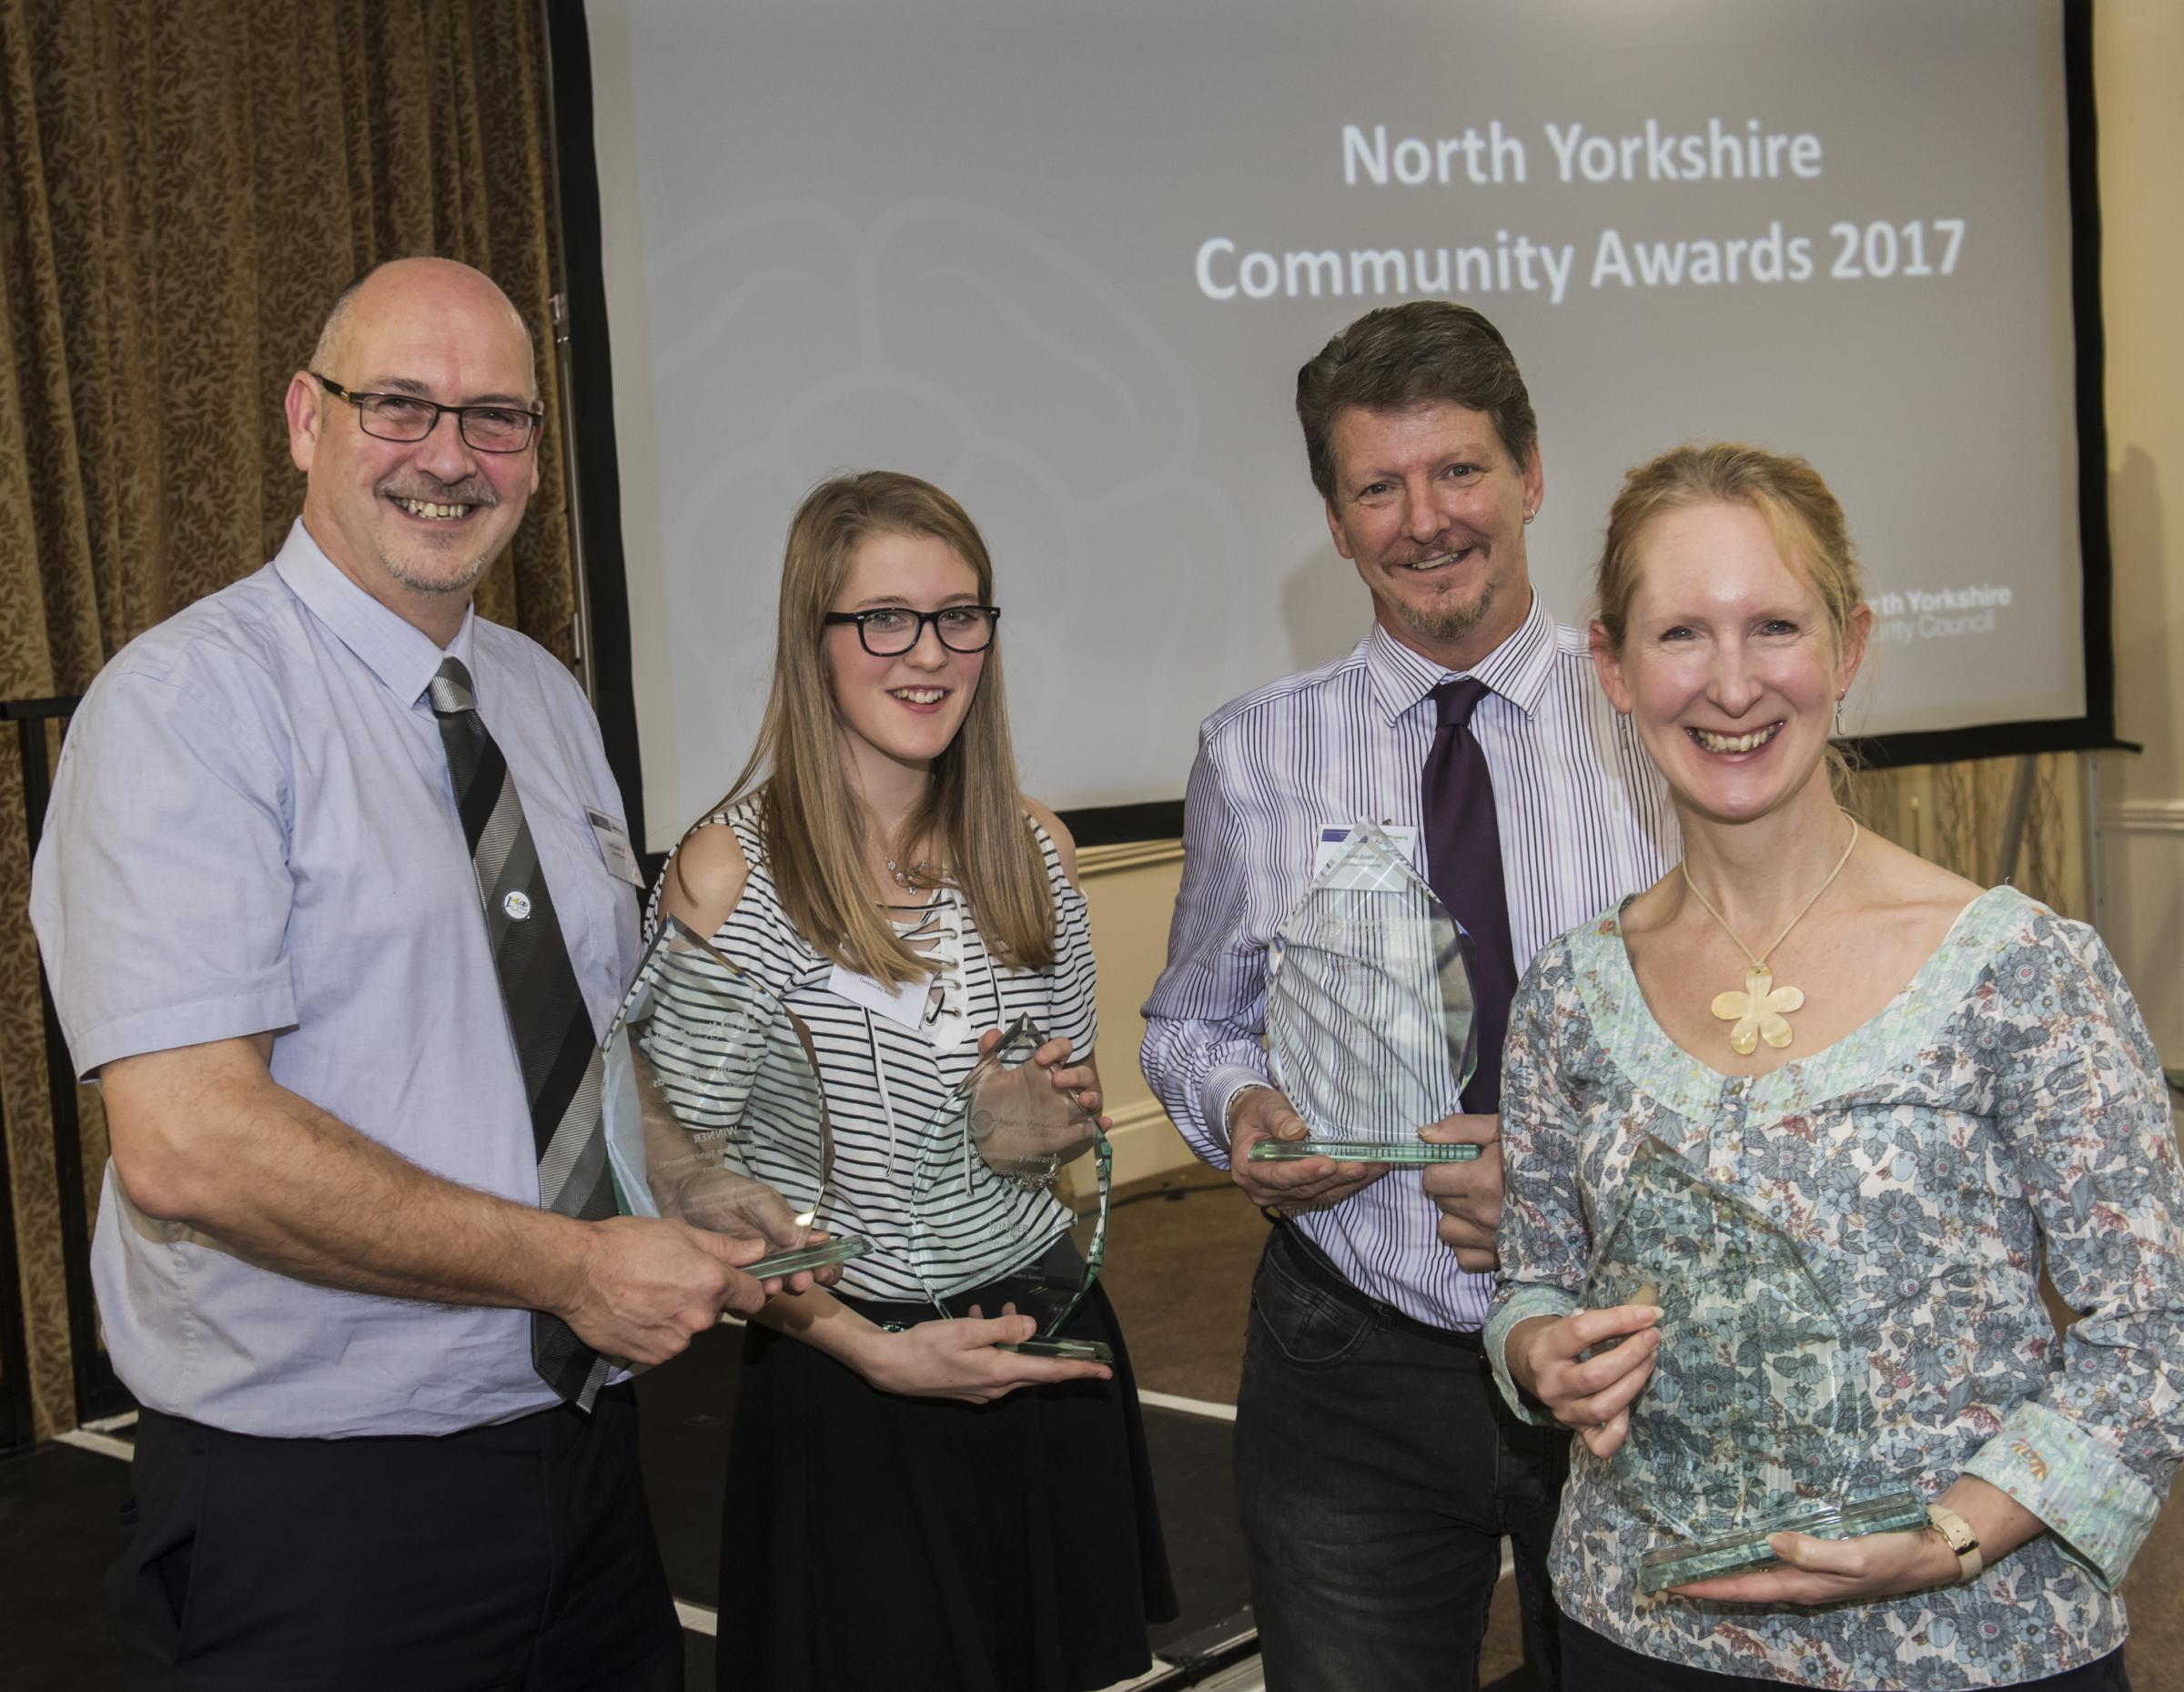 WINNERS: Last year's Community Awards winners. From left, Colin Eastwood of Yorkshire Coast Sight Support, Catherine Sawyer from Settle Stories, Kevin Axelby of Men in Sheds and Su Morgan of Tadcrafters